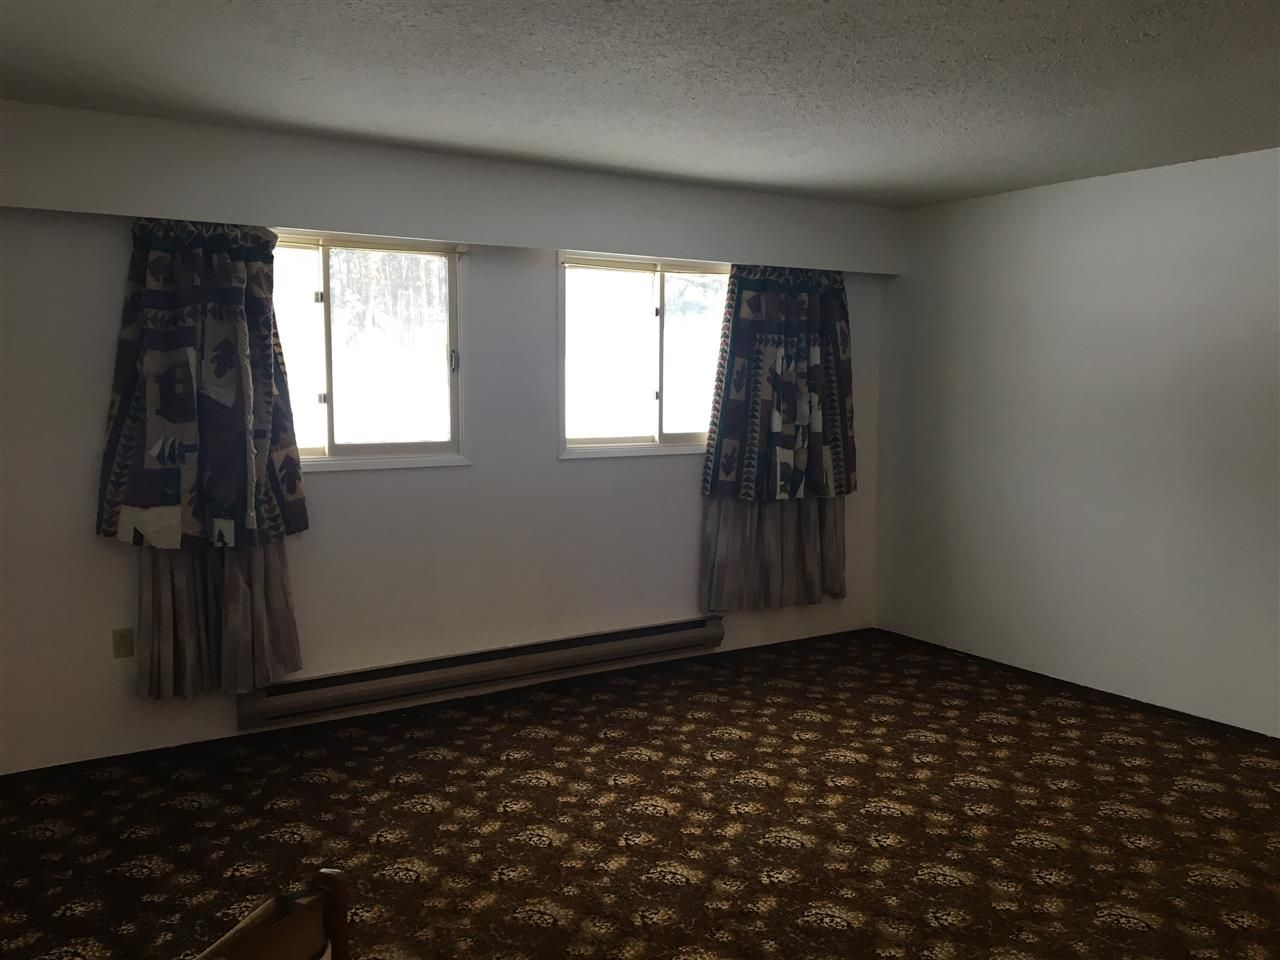 Photo 16: Photos: 160 BETTCHER Street in Quesnel: Quesnel - Town House for sale (Quesnel (Zone 28))  : MLS®# R2337127